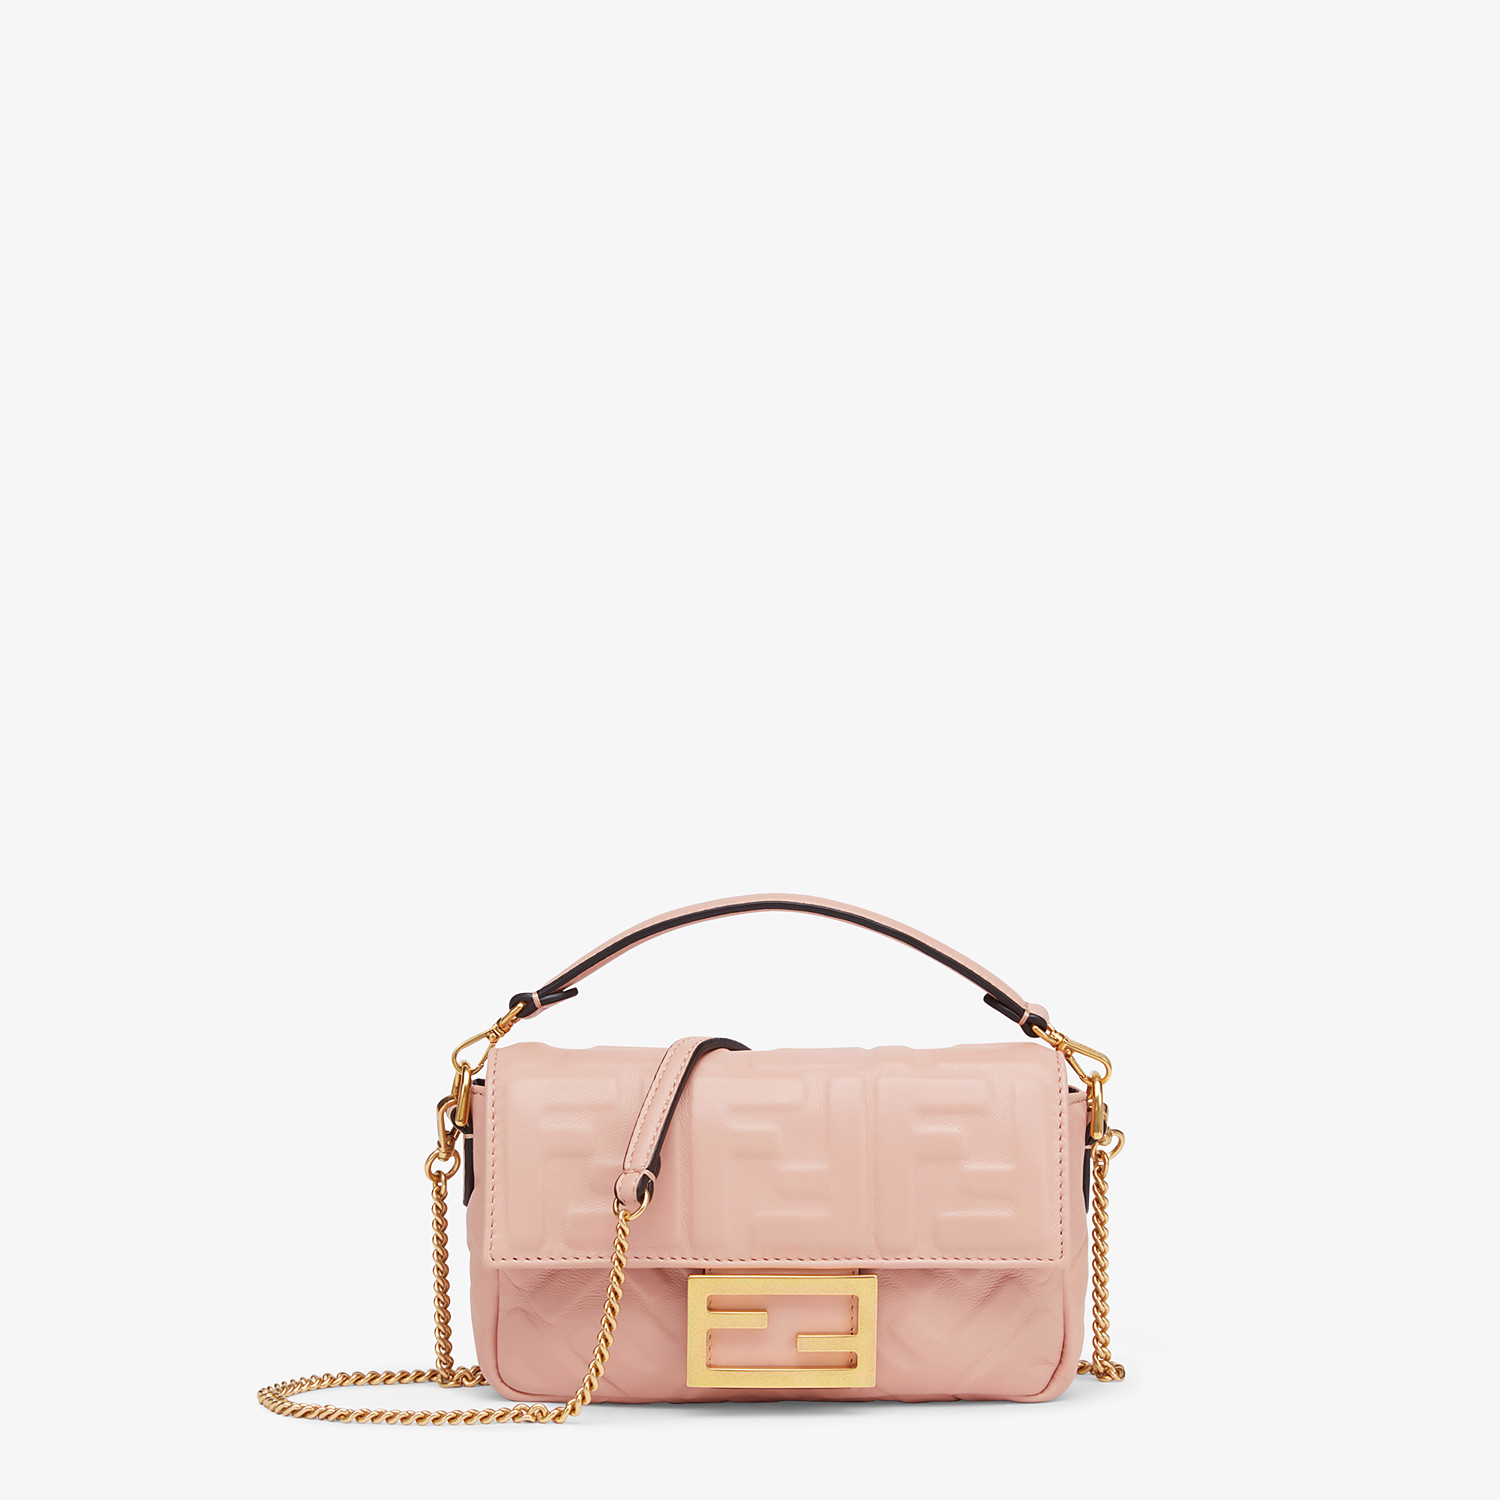 FENDI BAGUETTE - Pink nappa leather bag - view 1 detail